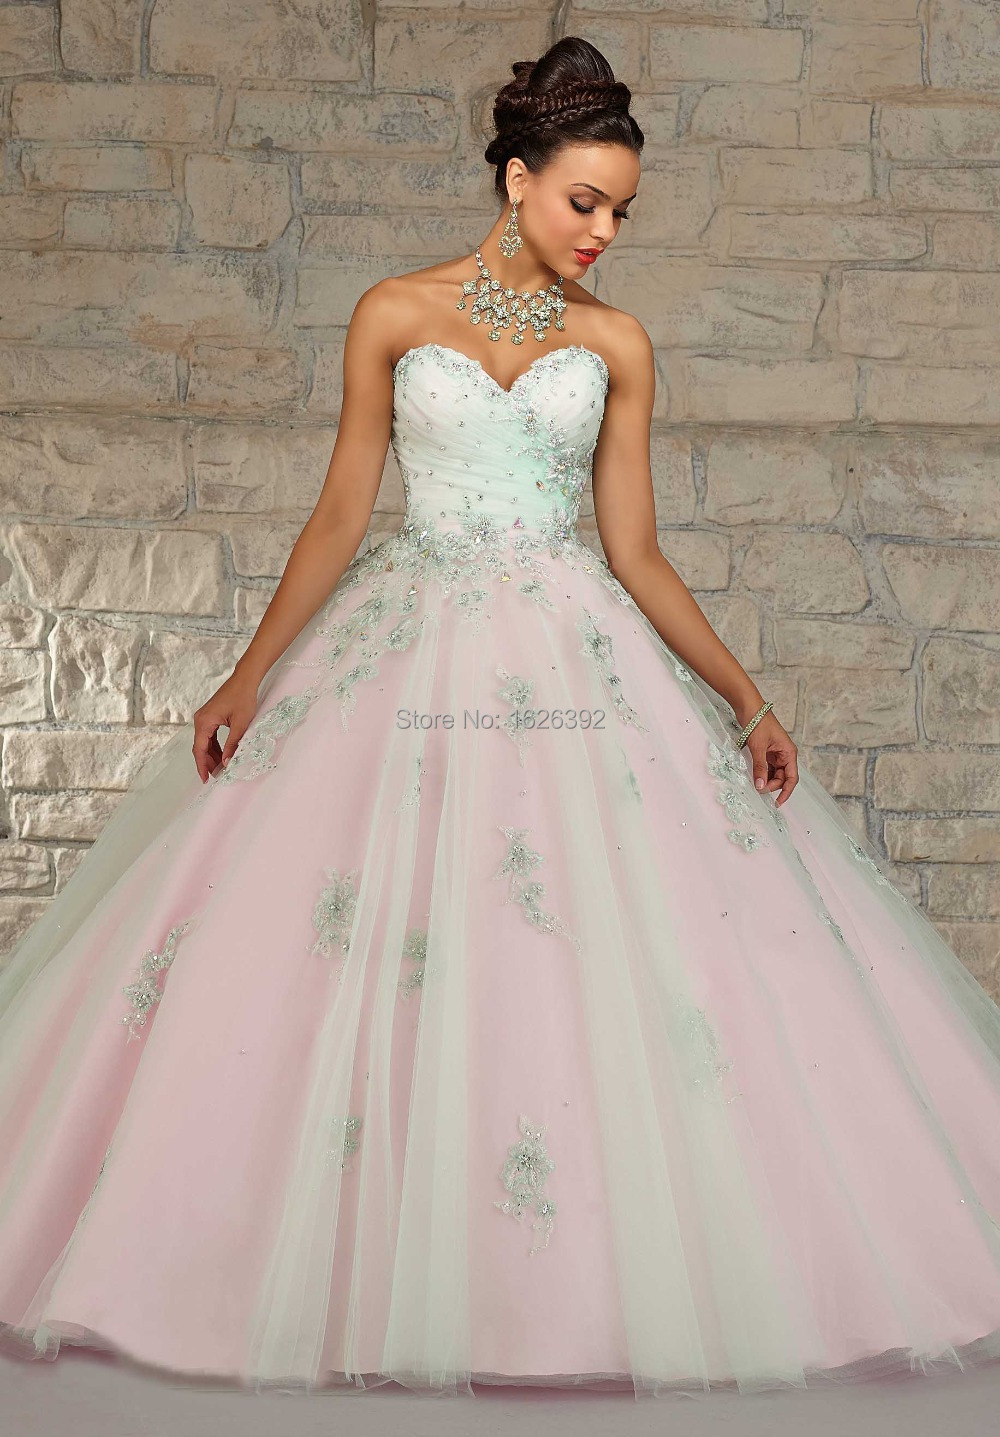 Beautiful Lace Appliques Quinceanera Dresses Ball Gowns